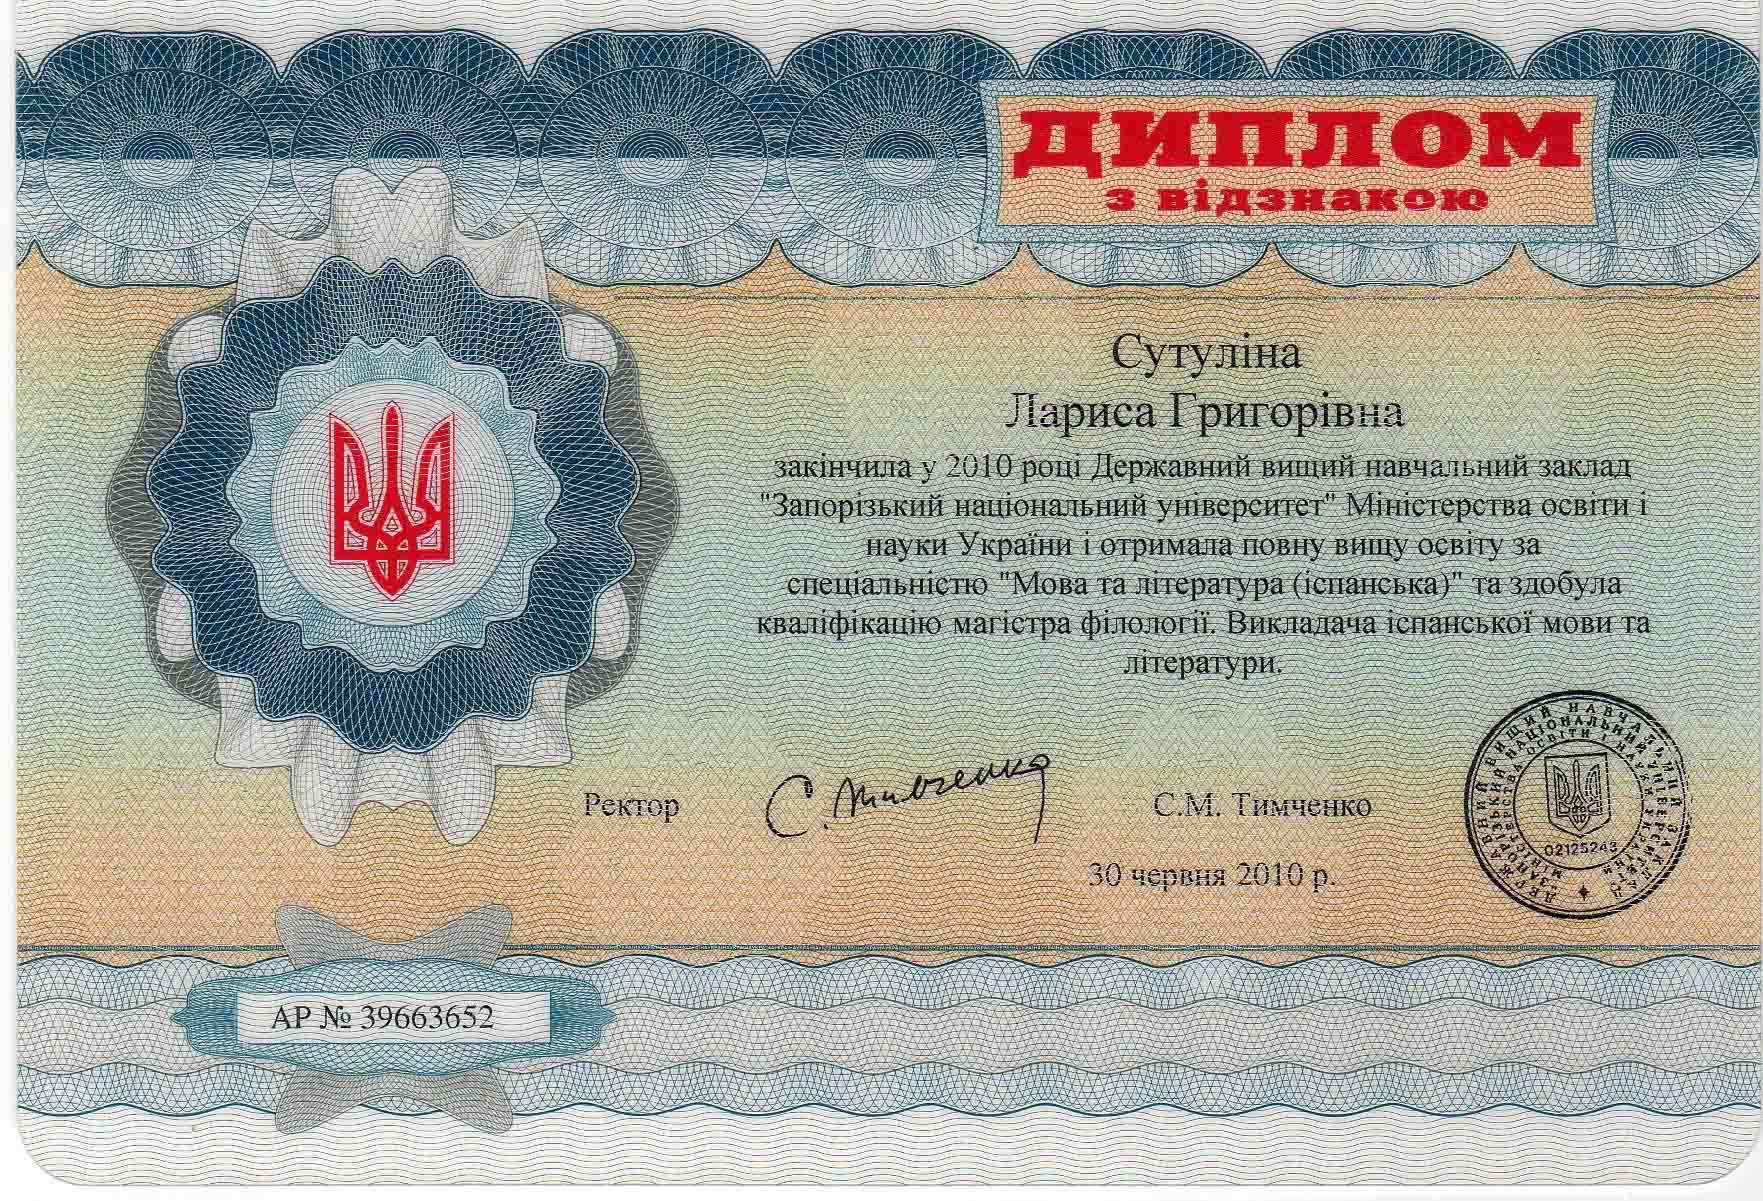 Diploma of university